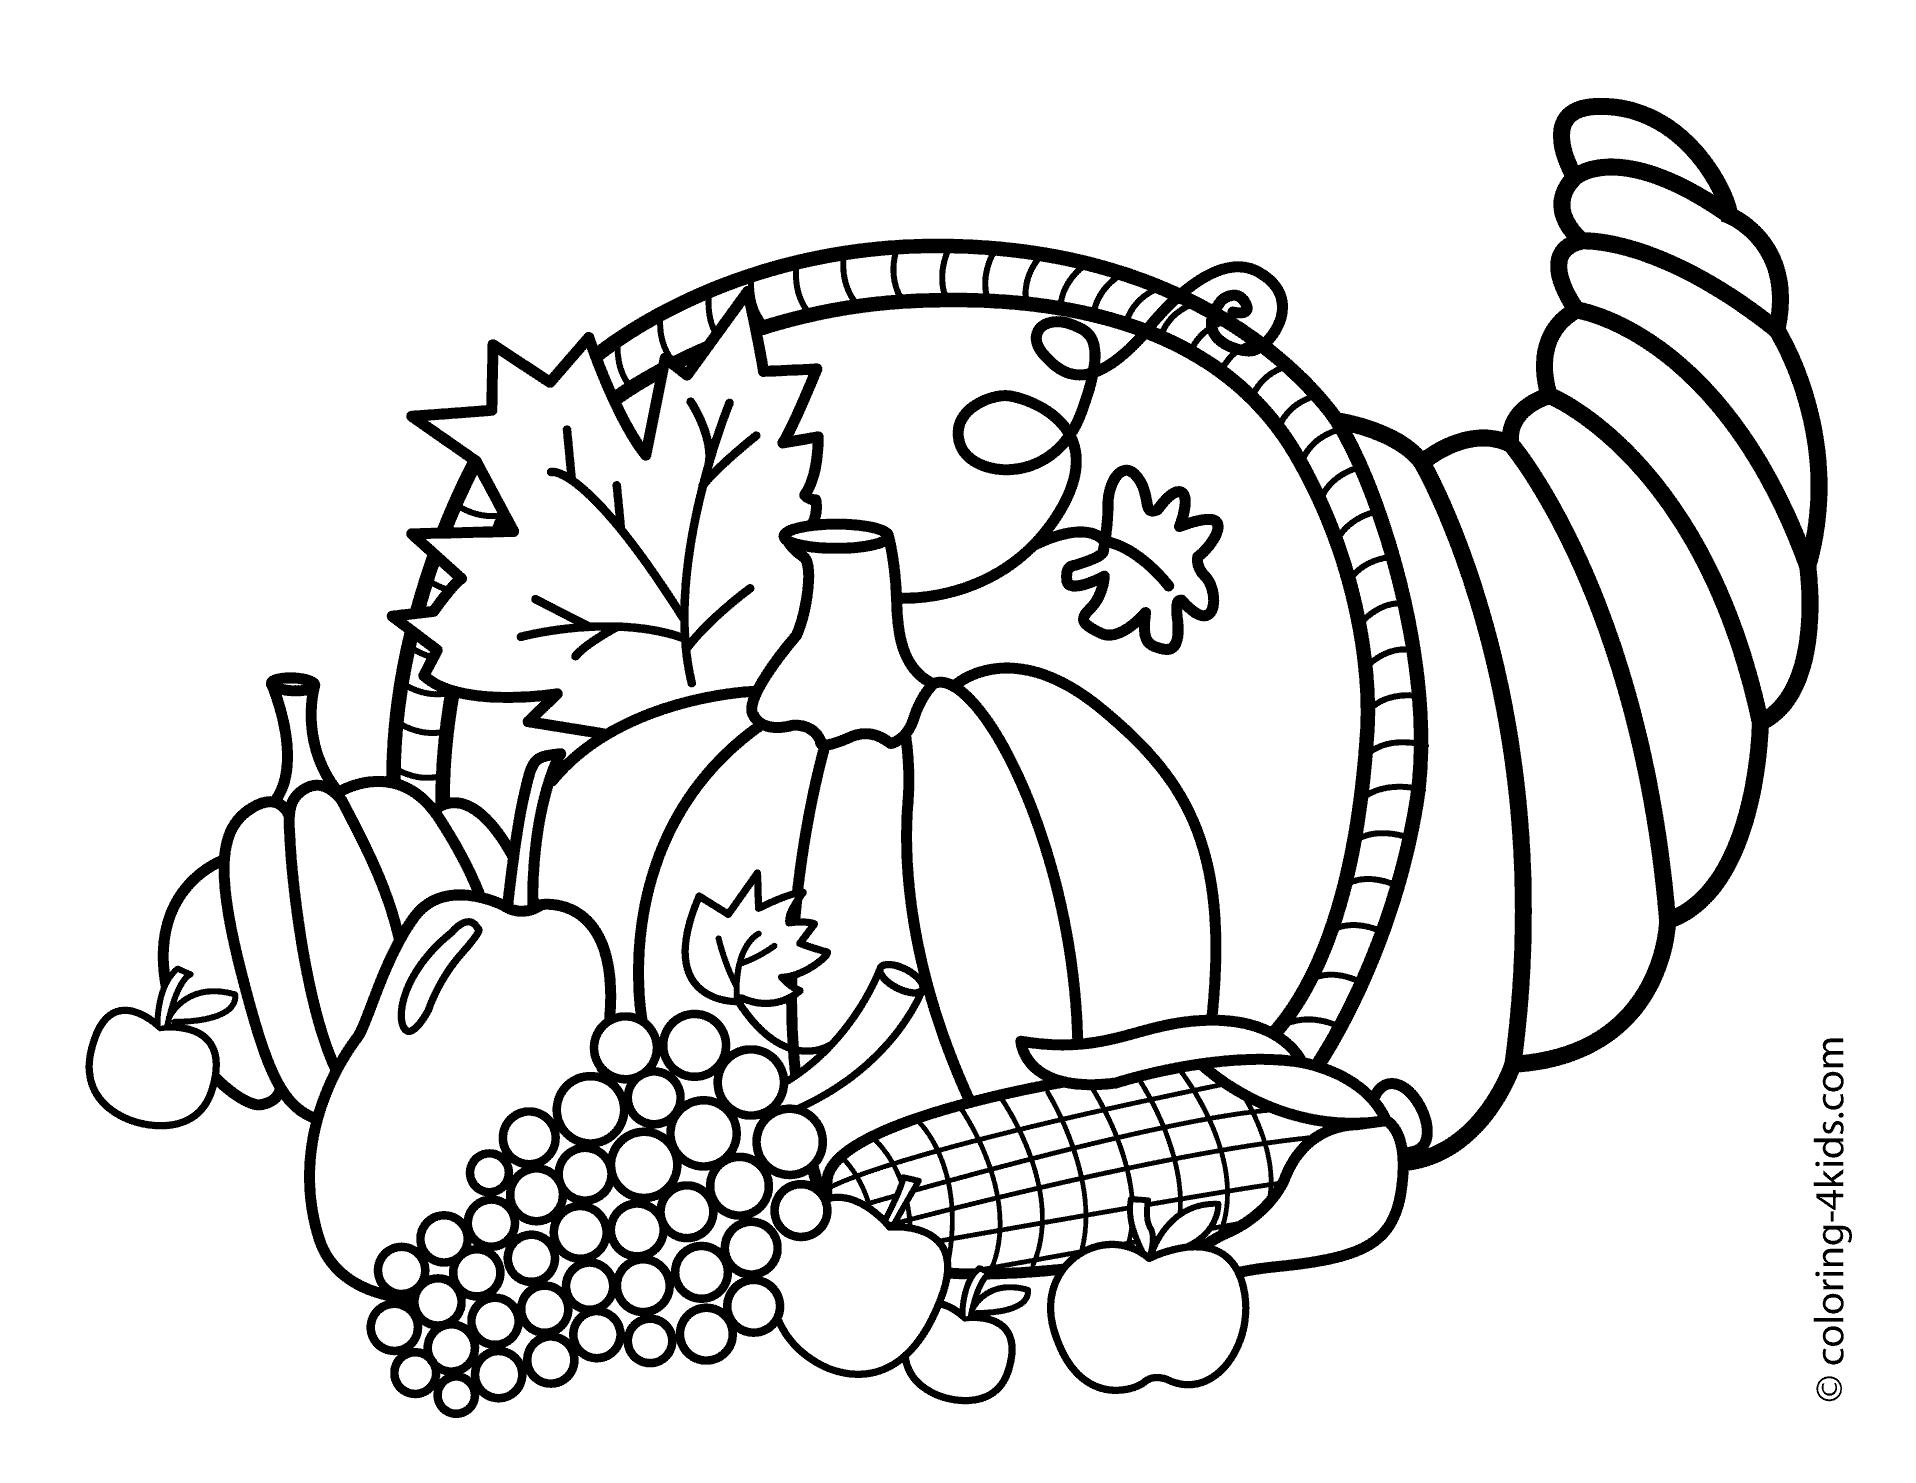 cornucopia coloring page thanksgiving coloring pages thanksgiving cornucopia page cornucopia coloring